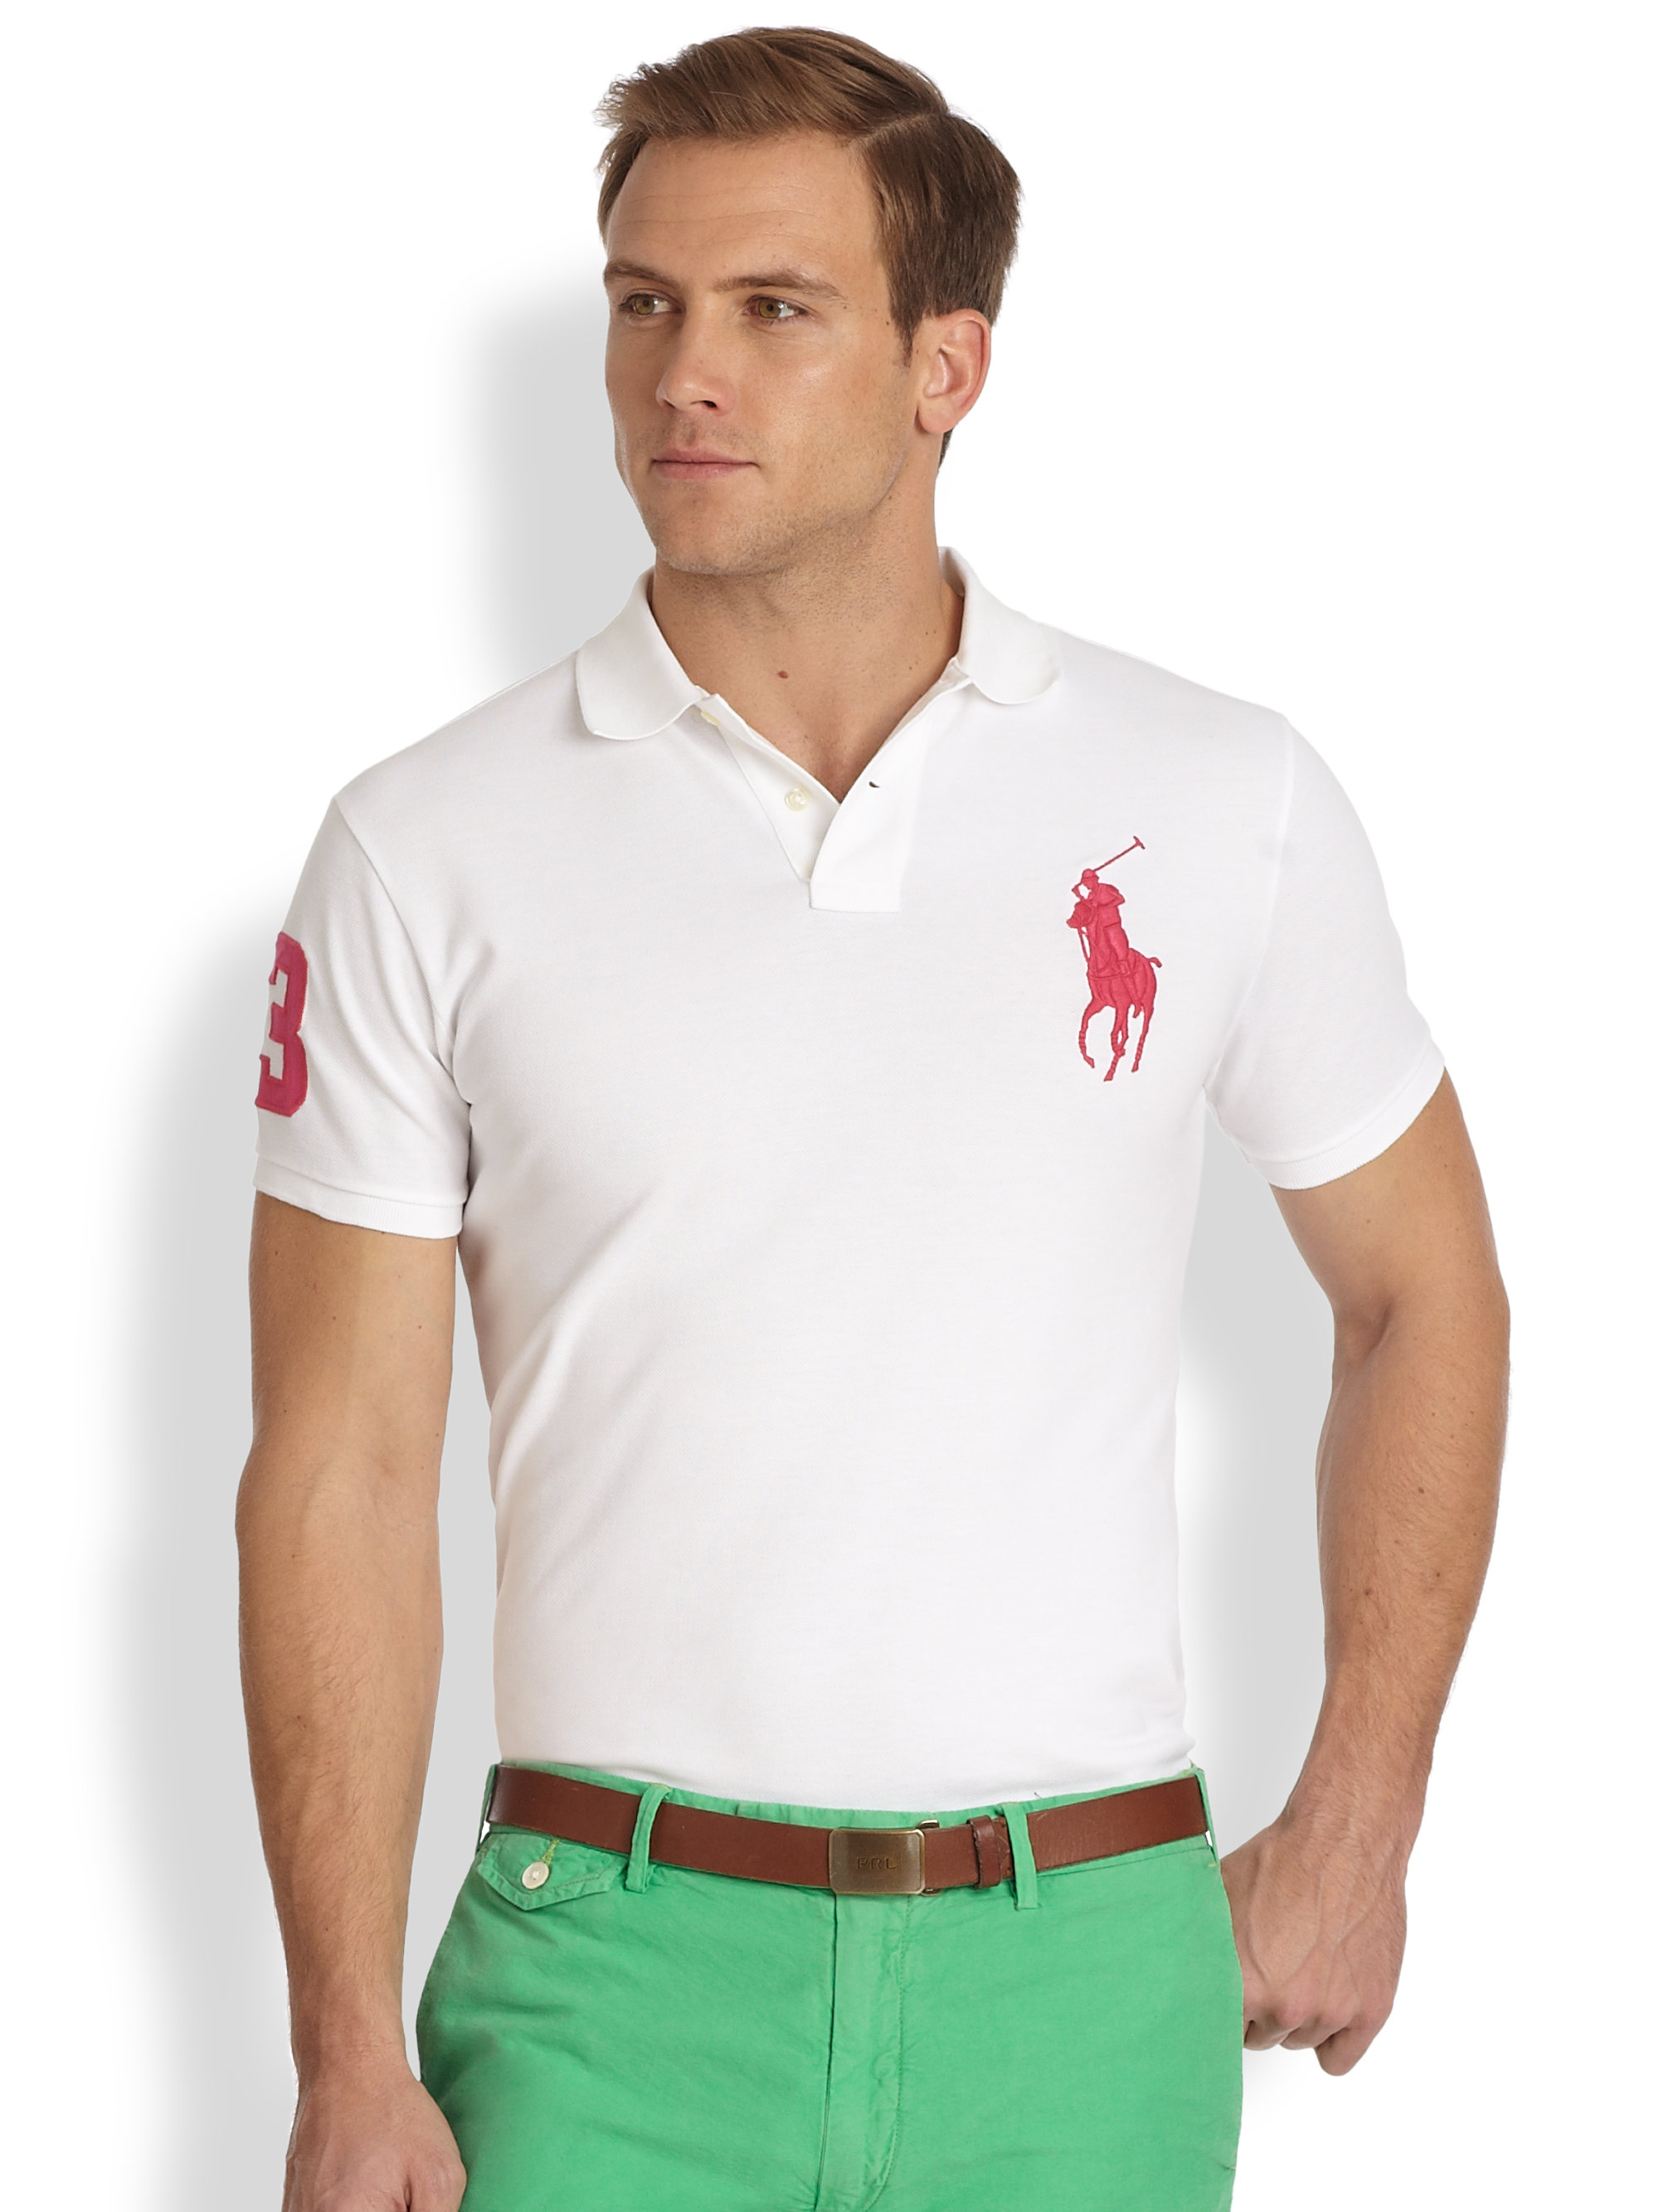 Polo ralph lauren Customfit Big Pony Cotton Mesh Polo in White for Men (WHITE PINK